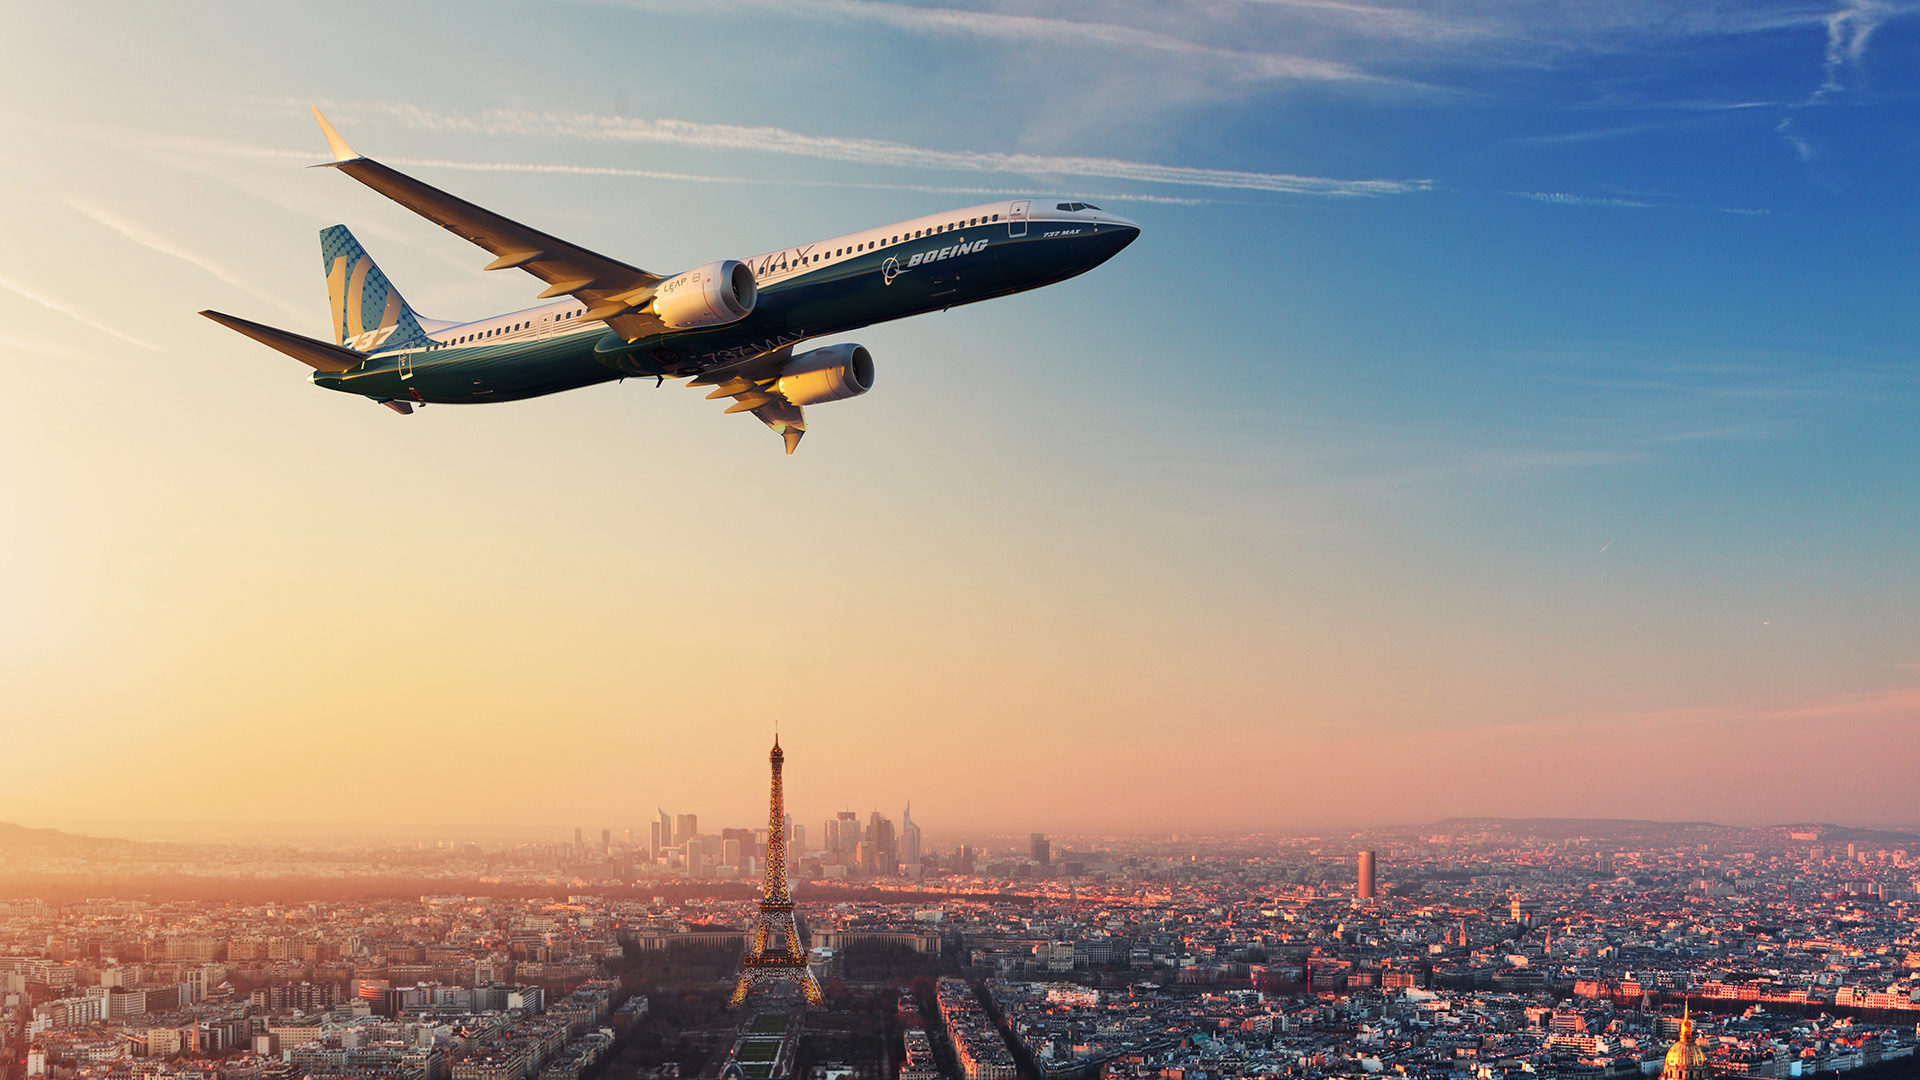 737 MAX 10 in flight over Paris (artist's rendering, not a photo)